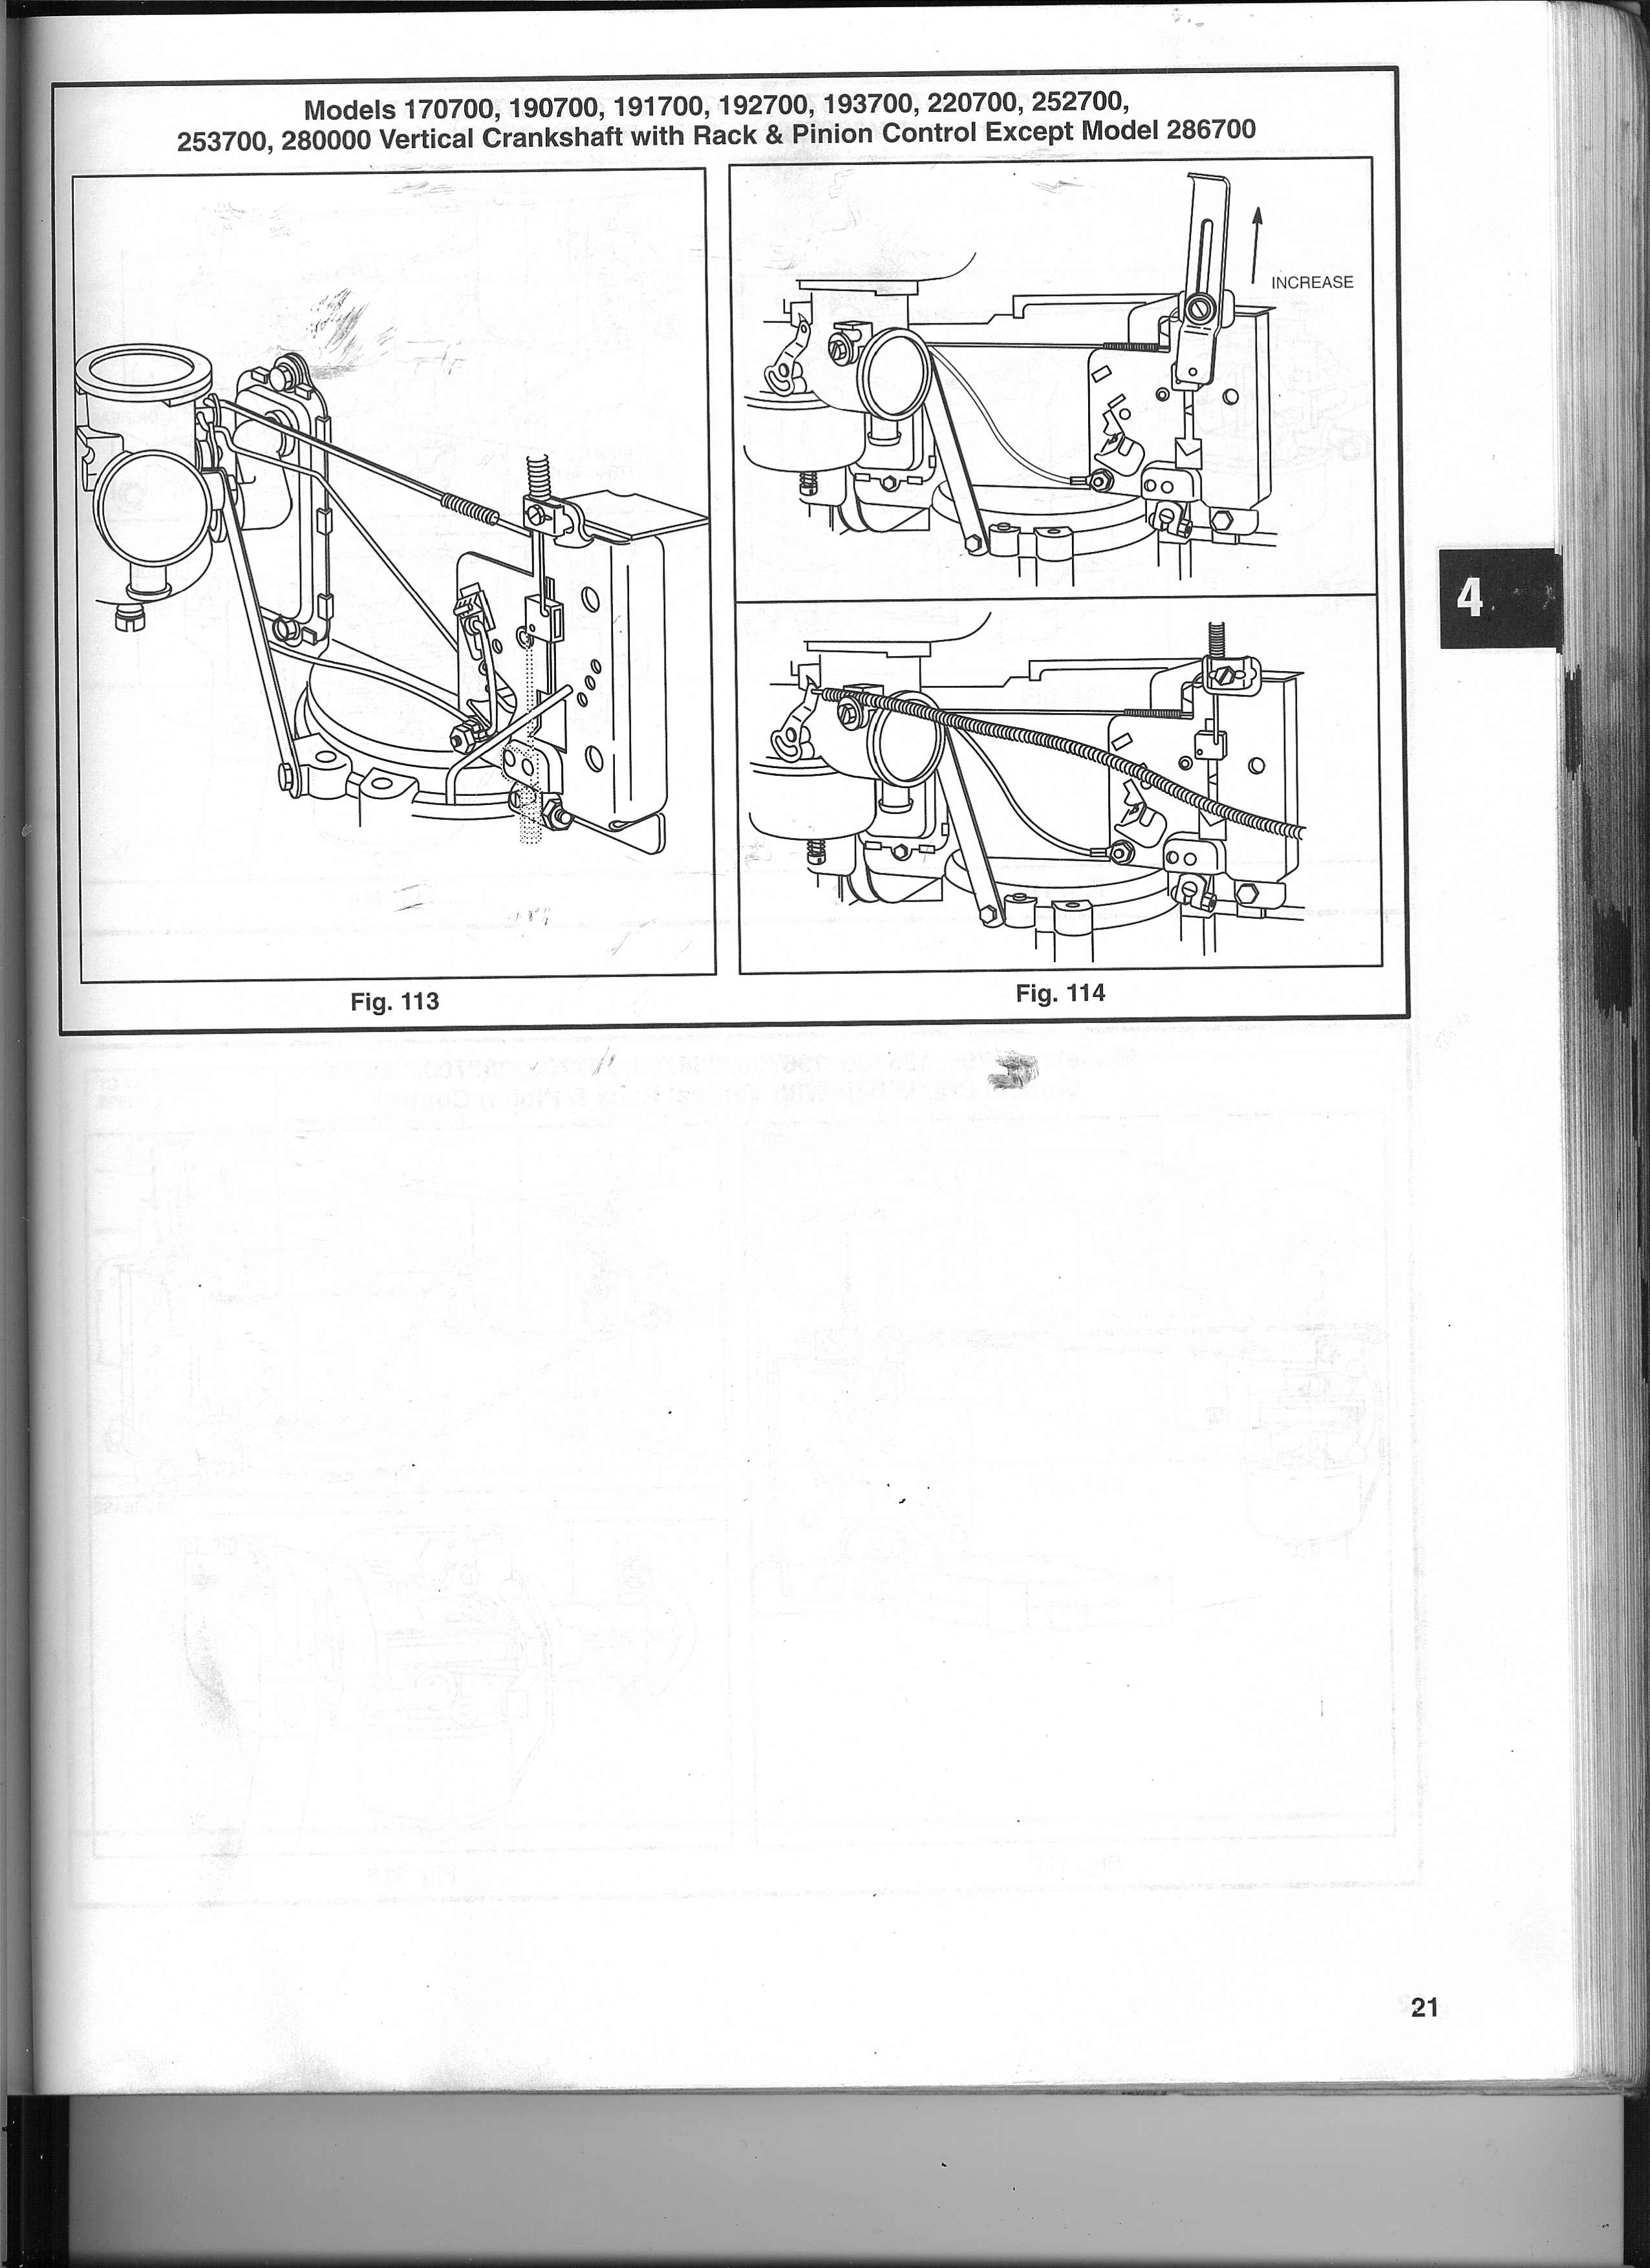 8hp Briggs Engine Diagram 10 Hp And Stratton Wiring I Have An Old Westwood Tractor With A 2552x3508